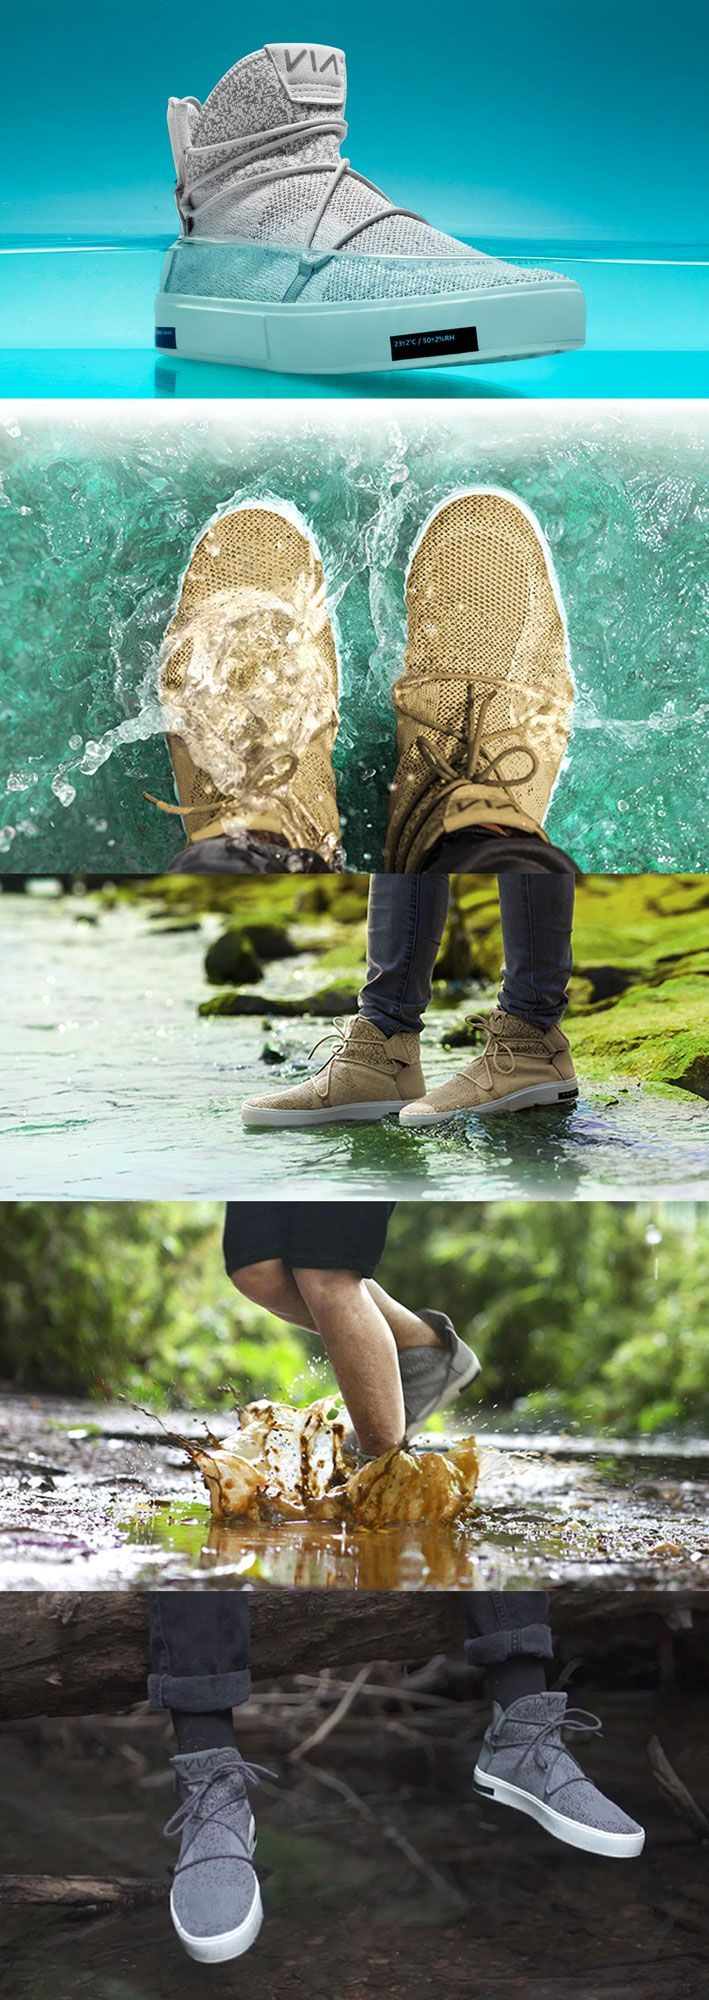 VIA Design Lab The Waterproof Knit Shoes Made from Ocean